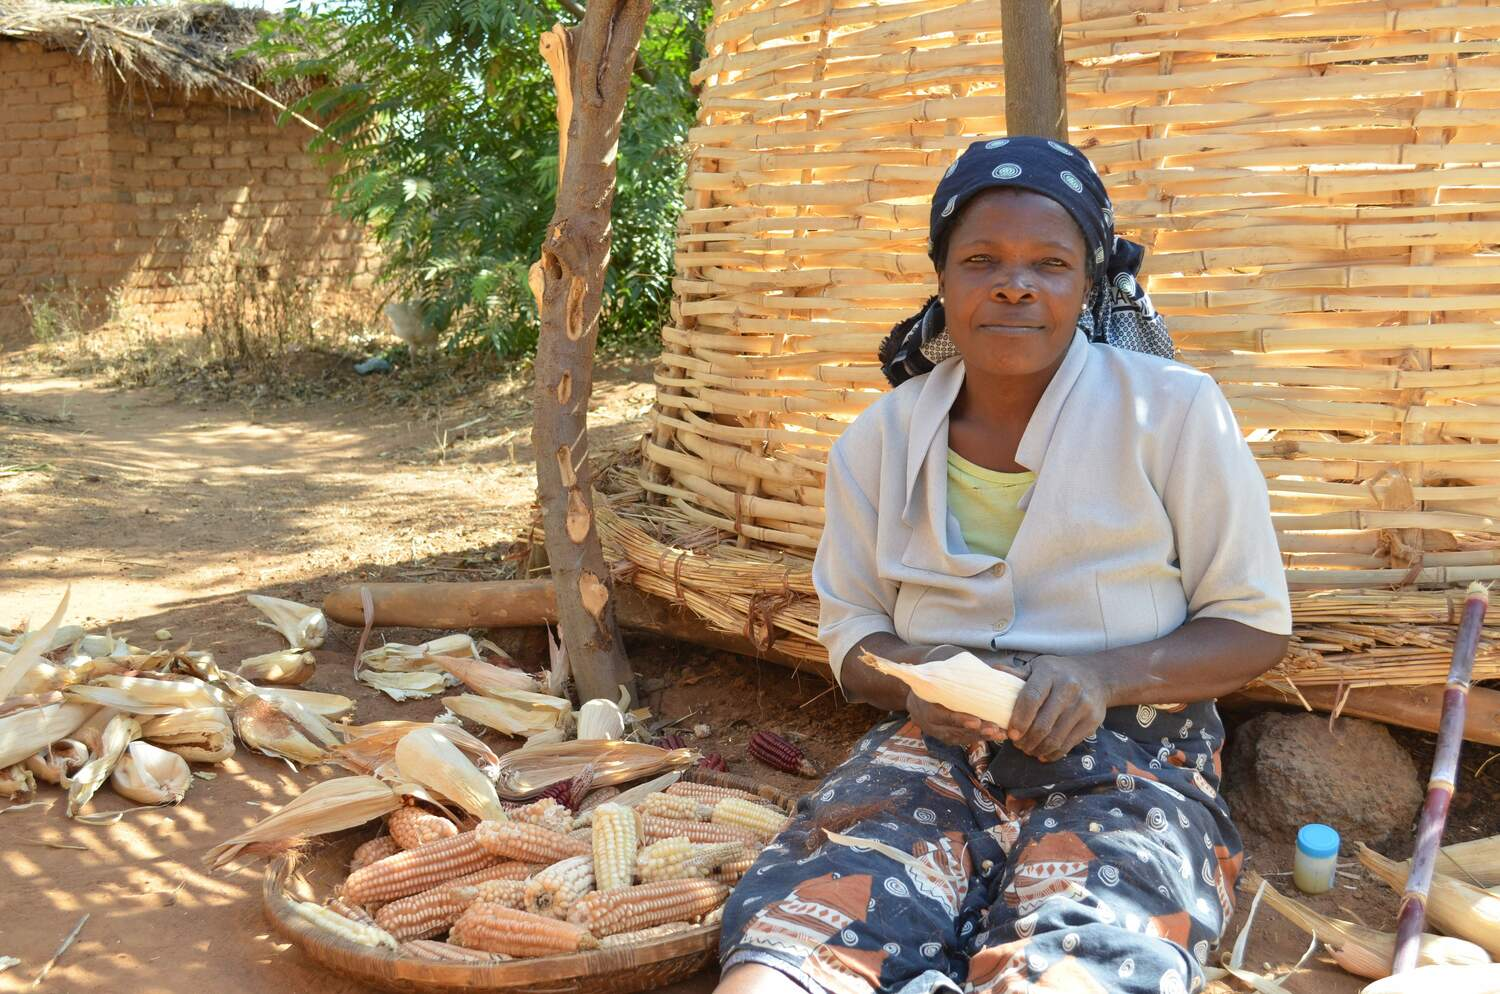 Maize (corn on the cob) is the most important staple food in large parts of Africa. Maize preparation in rural Malawi.